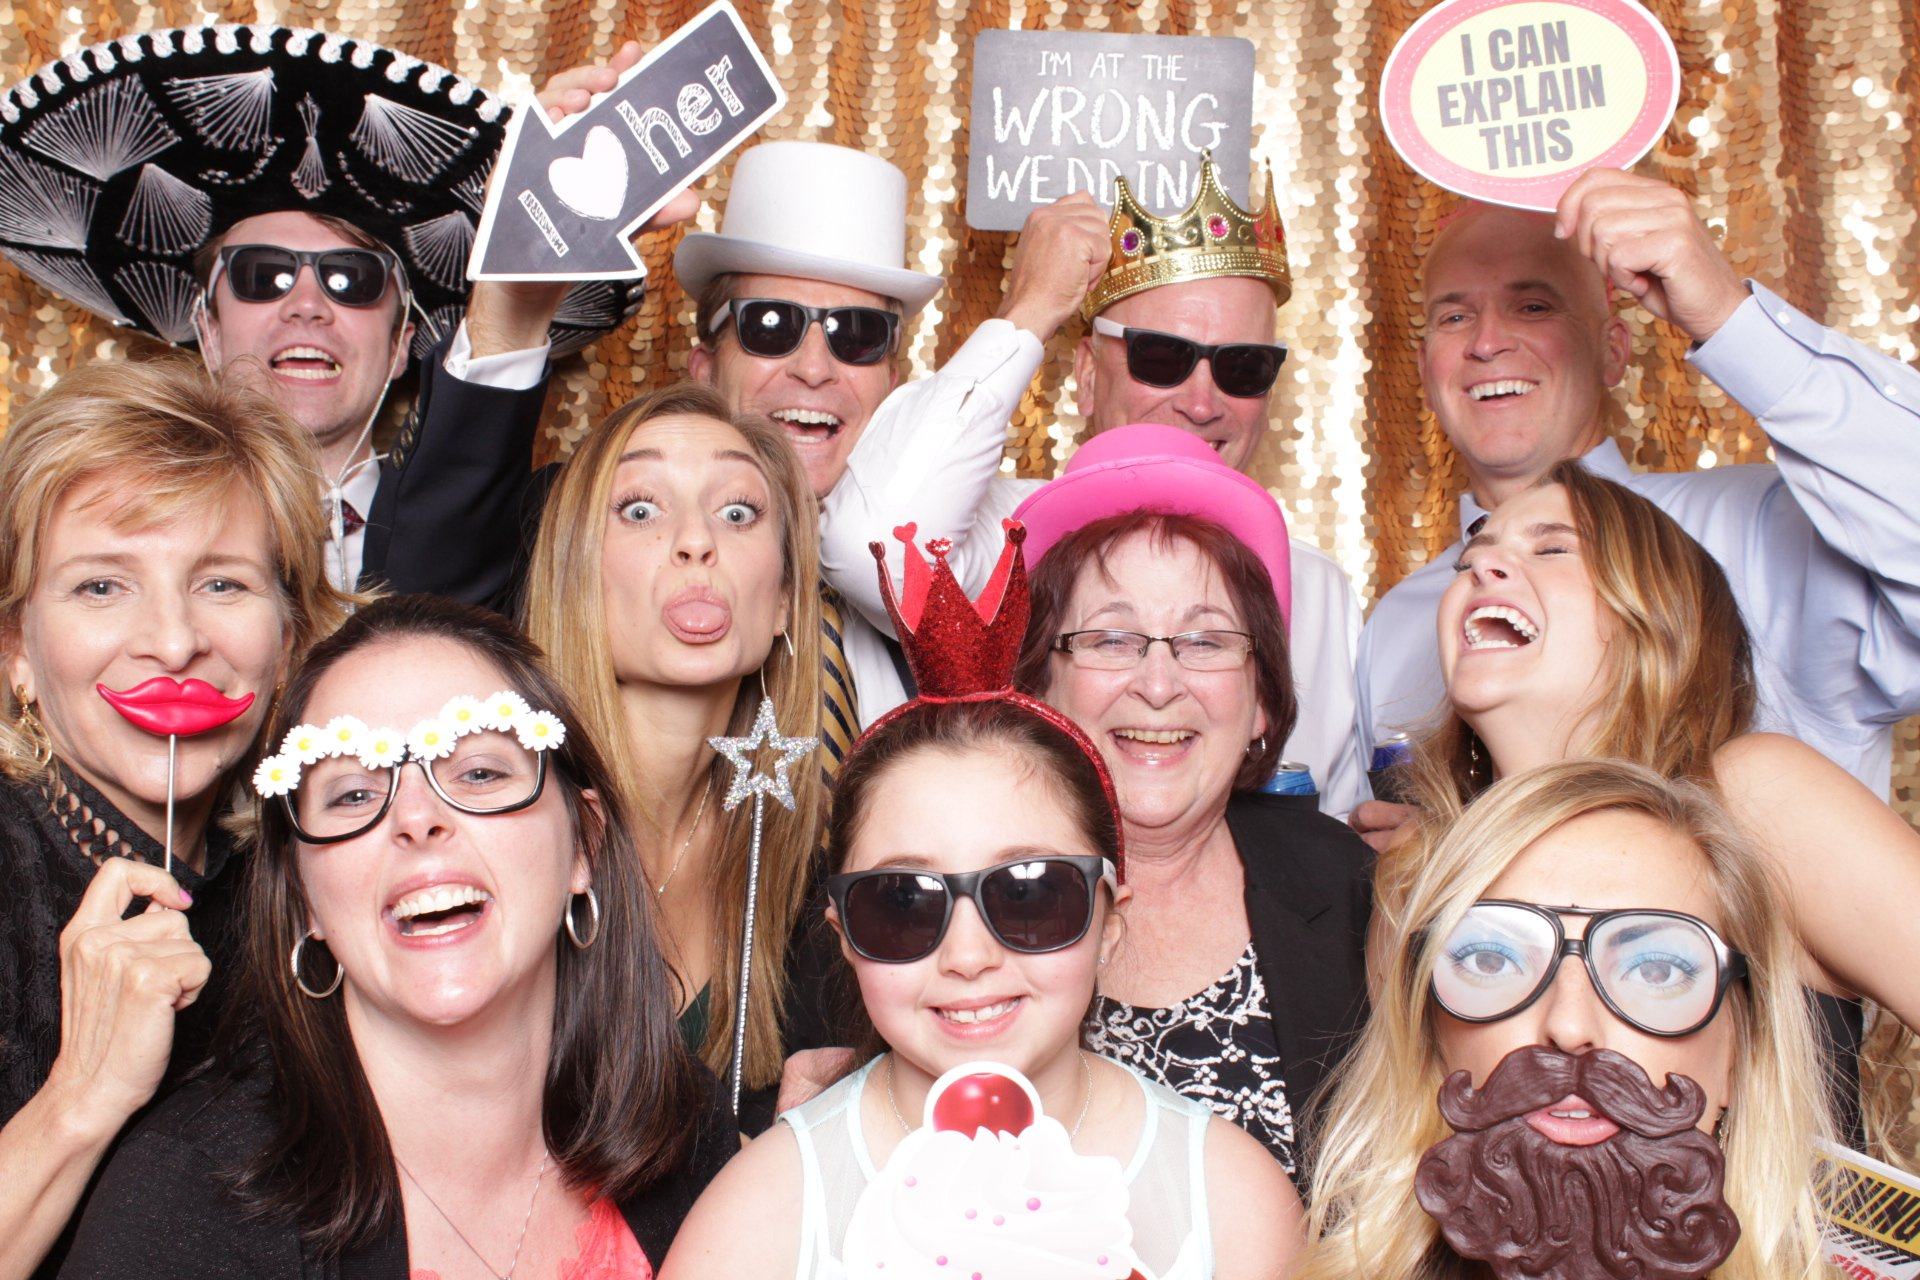 Mad Mad Photo Booths - SanAntonioWeddings.com - BridalBuzz